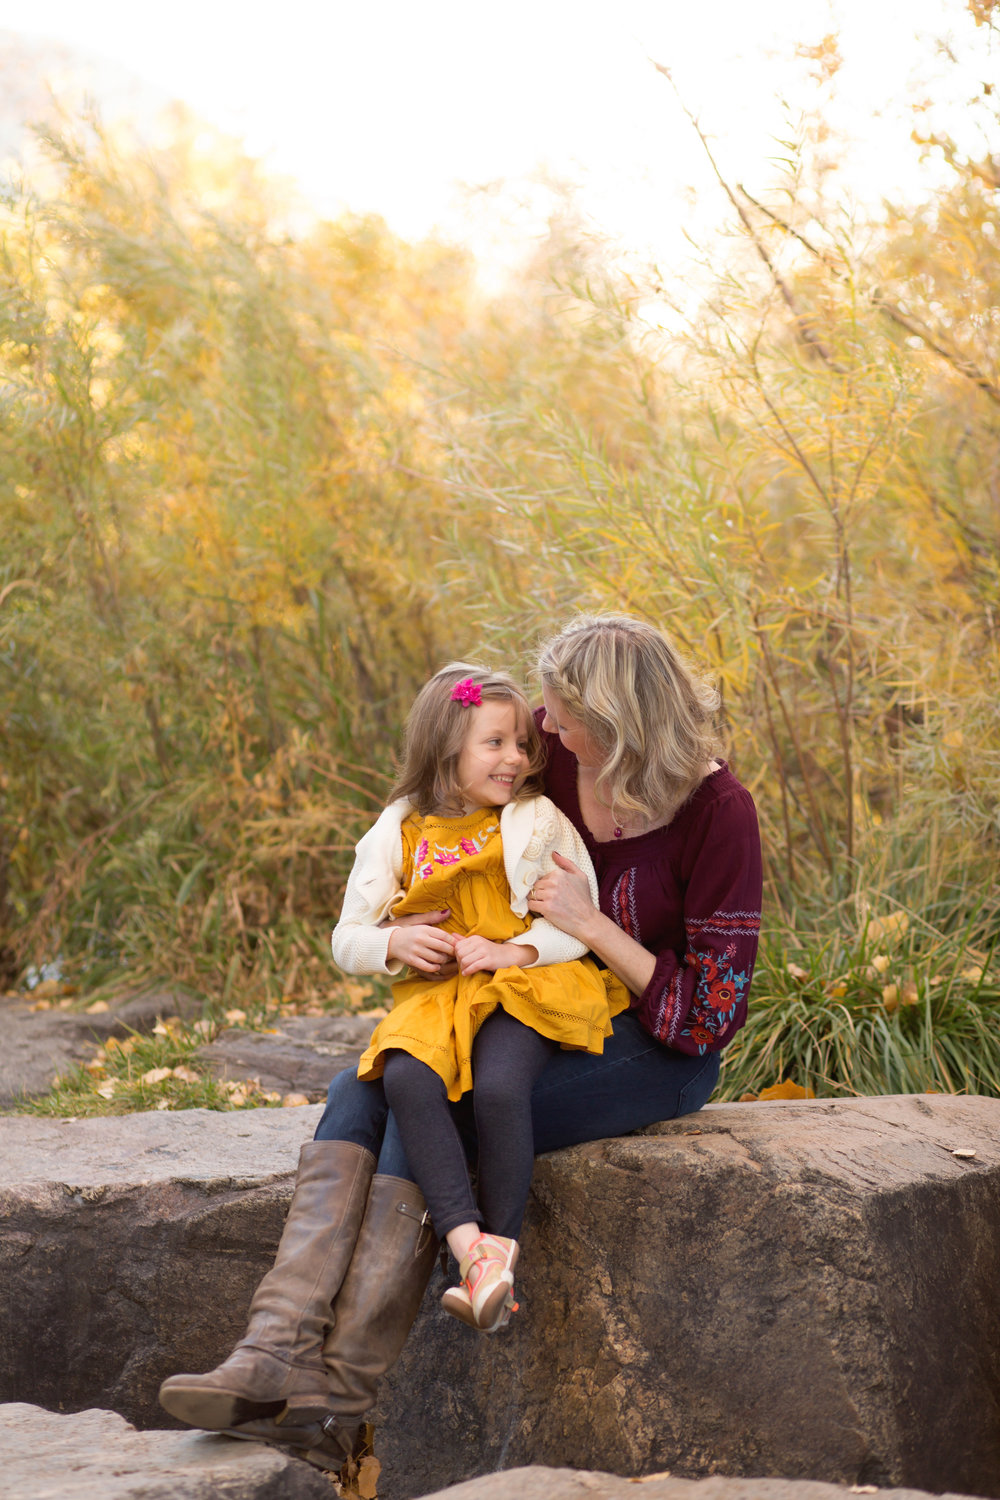 Denver Maternity Photographer, Boulder Maternity Photographer, Boulder Newborn Photographer, Denver Newborn Photographer